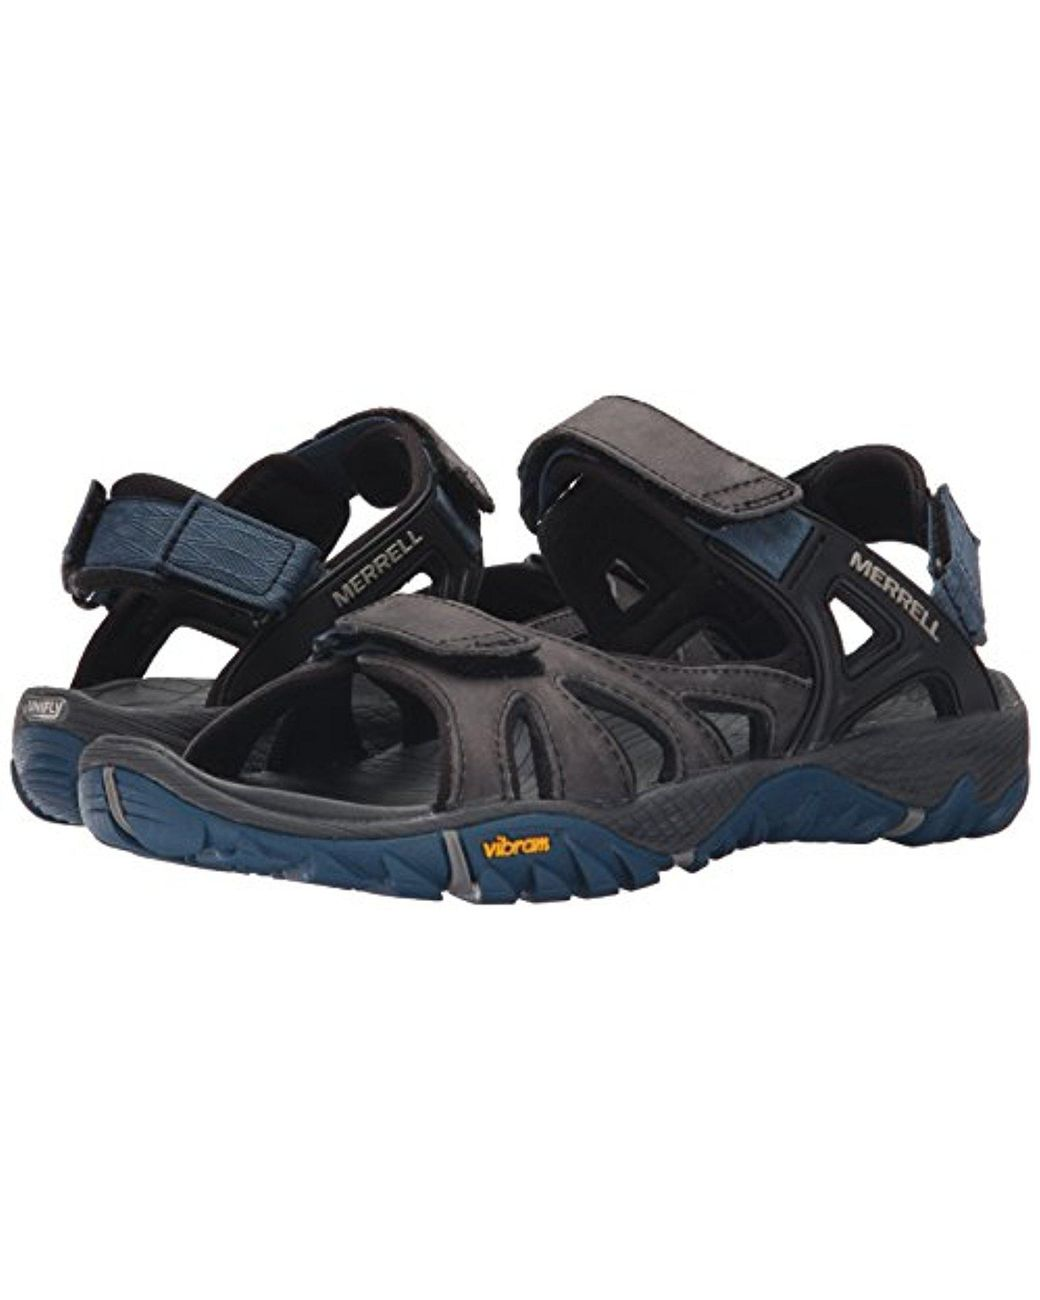 41d0794afceb Lyst - Merrell  s All Out All Out Blaze Sieve Convert Hiking Sandals in  Gray for Men - Save 47%